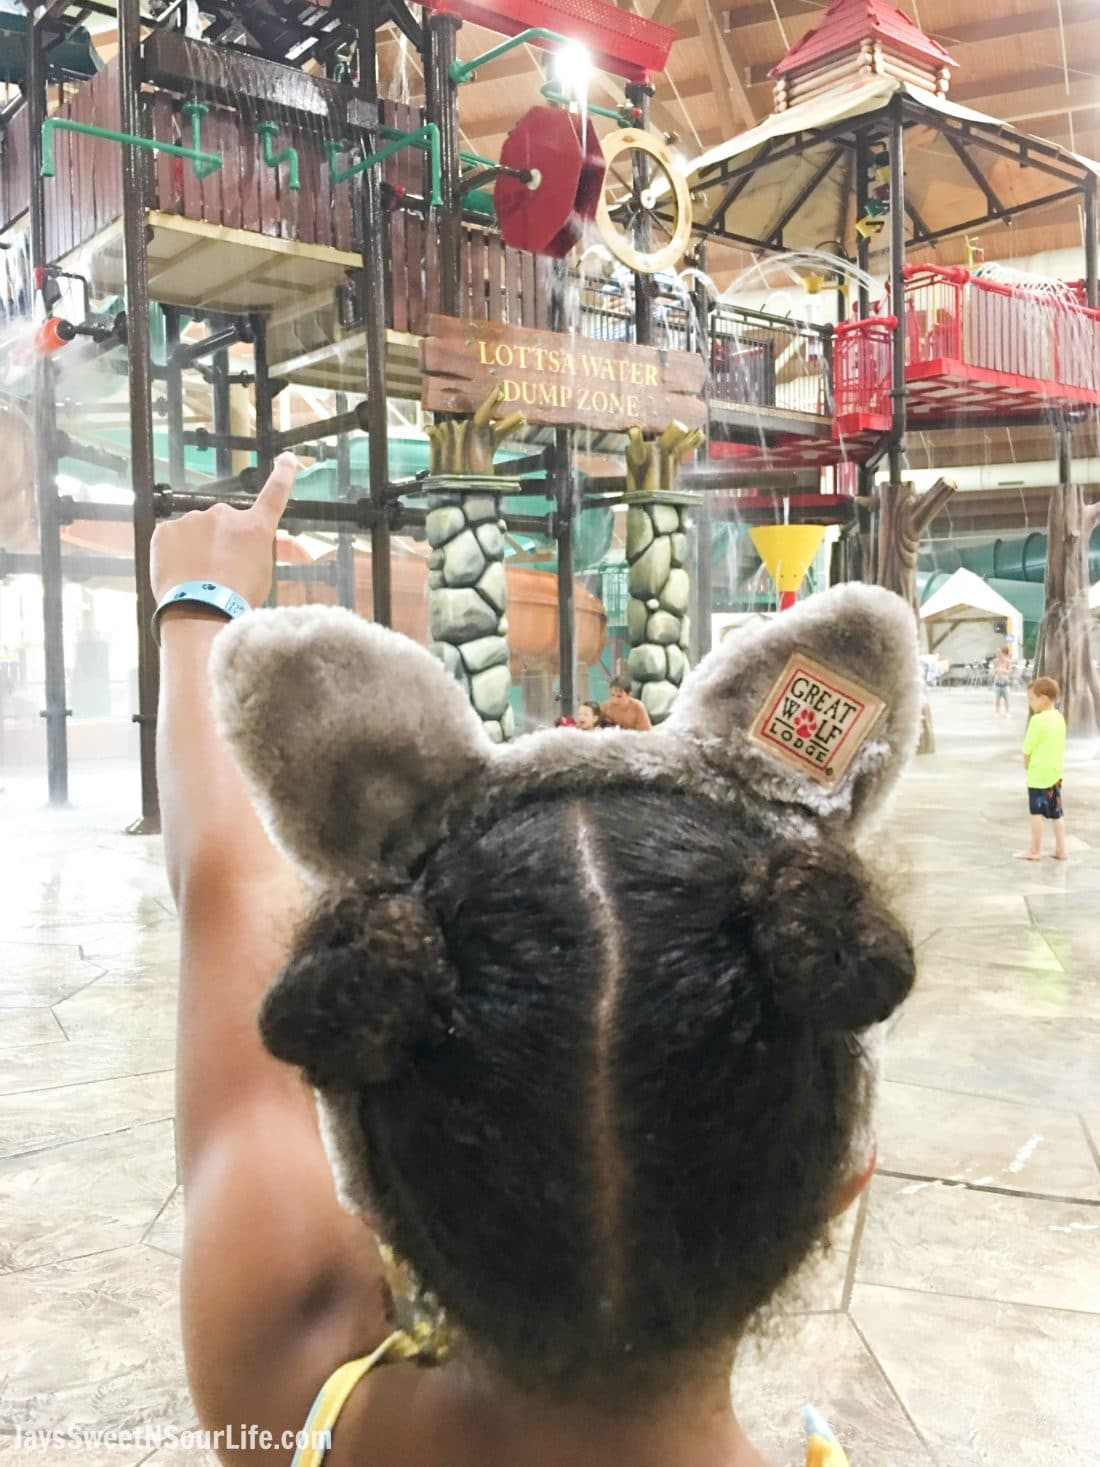 The Great Wolf Lodge - Cabarrus County Girls In Indoor Water Park. A Large Families Adventure Guide To Cabarrus County - North Carolina - via JaysSweetNSourLife.com.